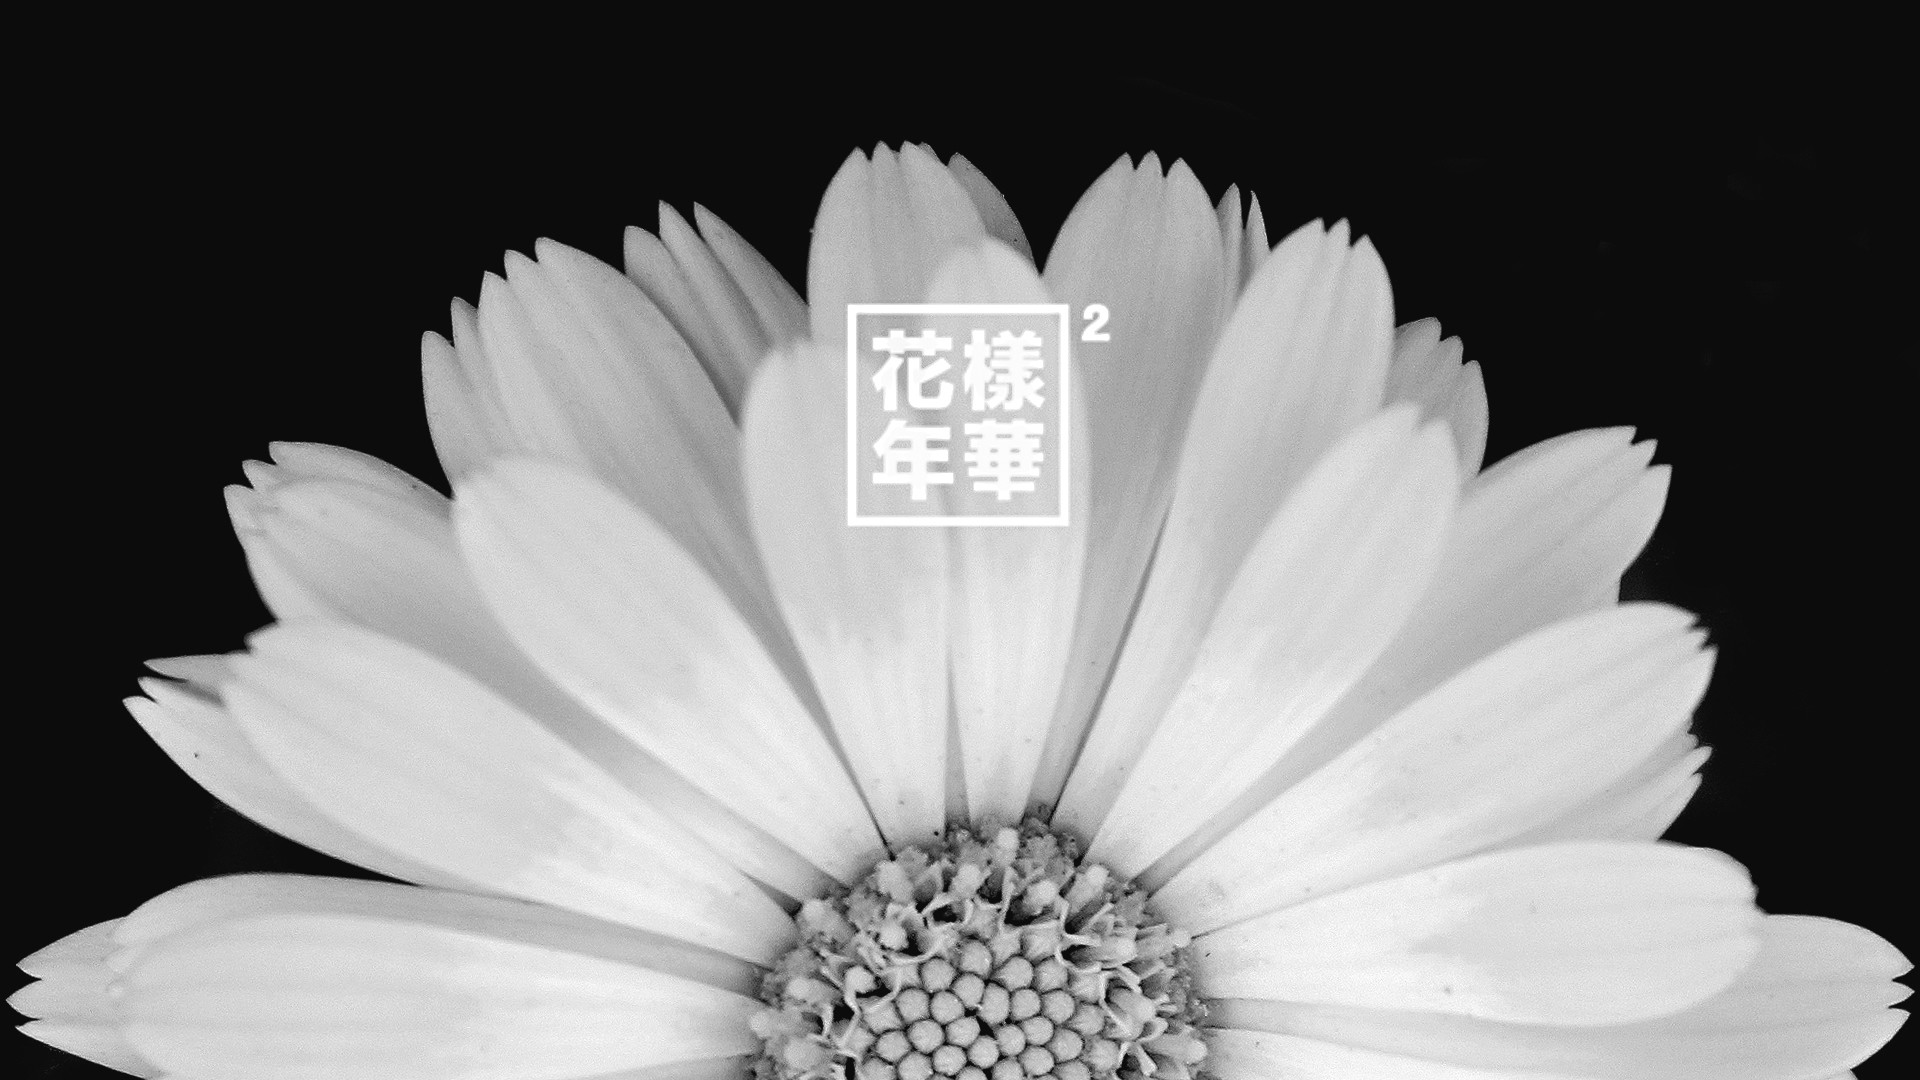 I made some simple 화양연화 pt.2 wallpapers, enjoy!